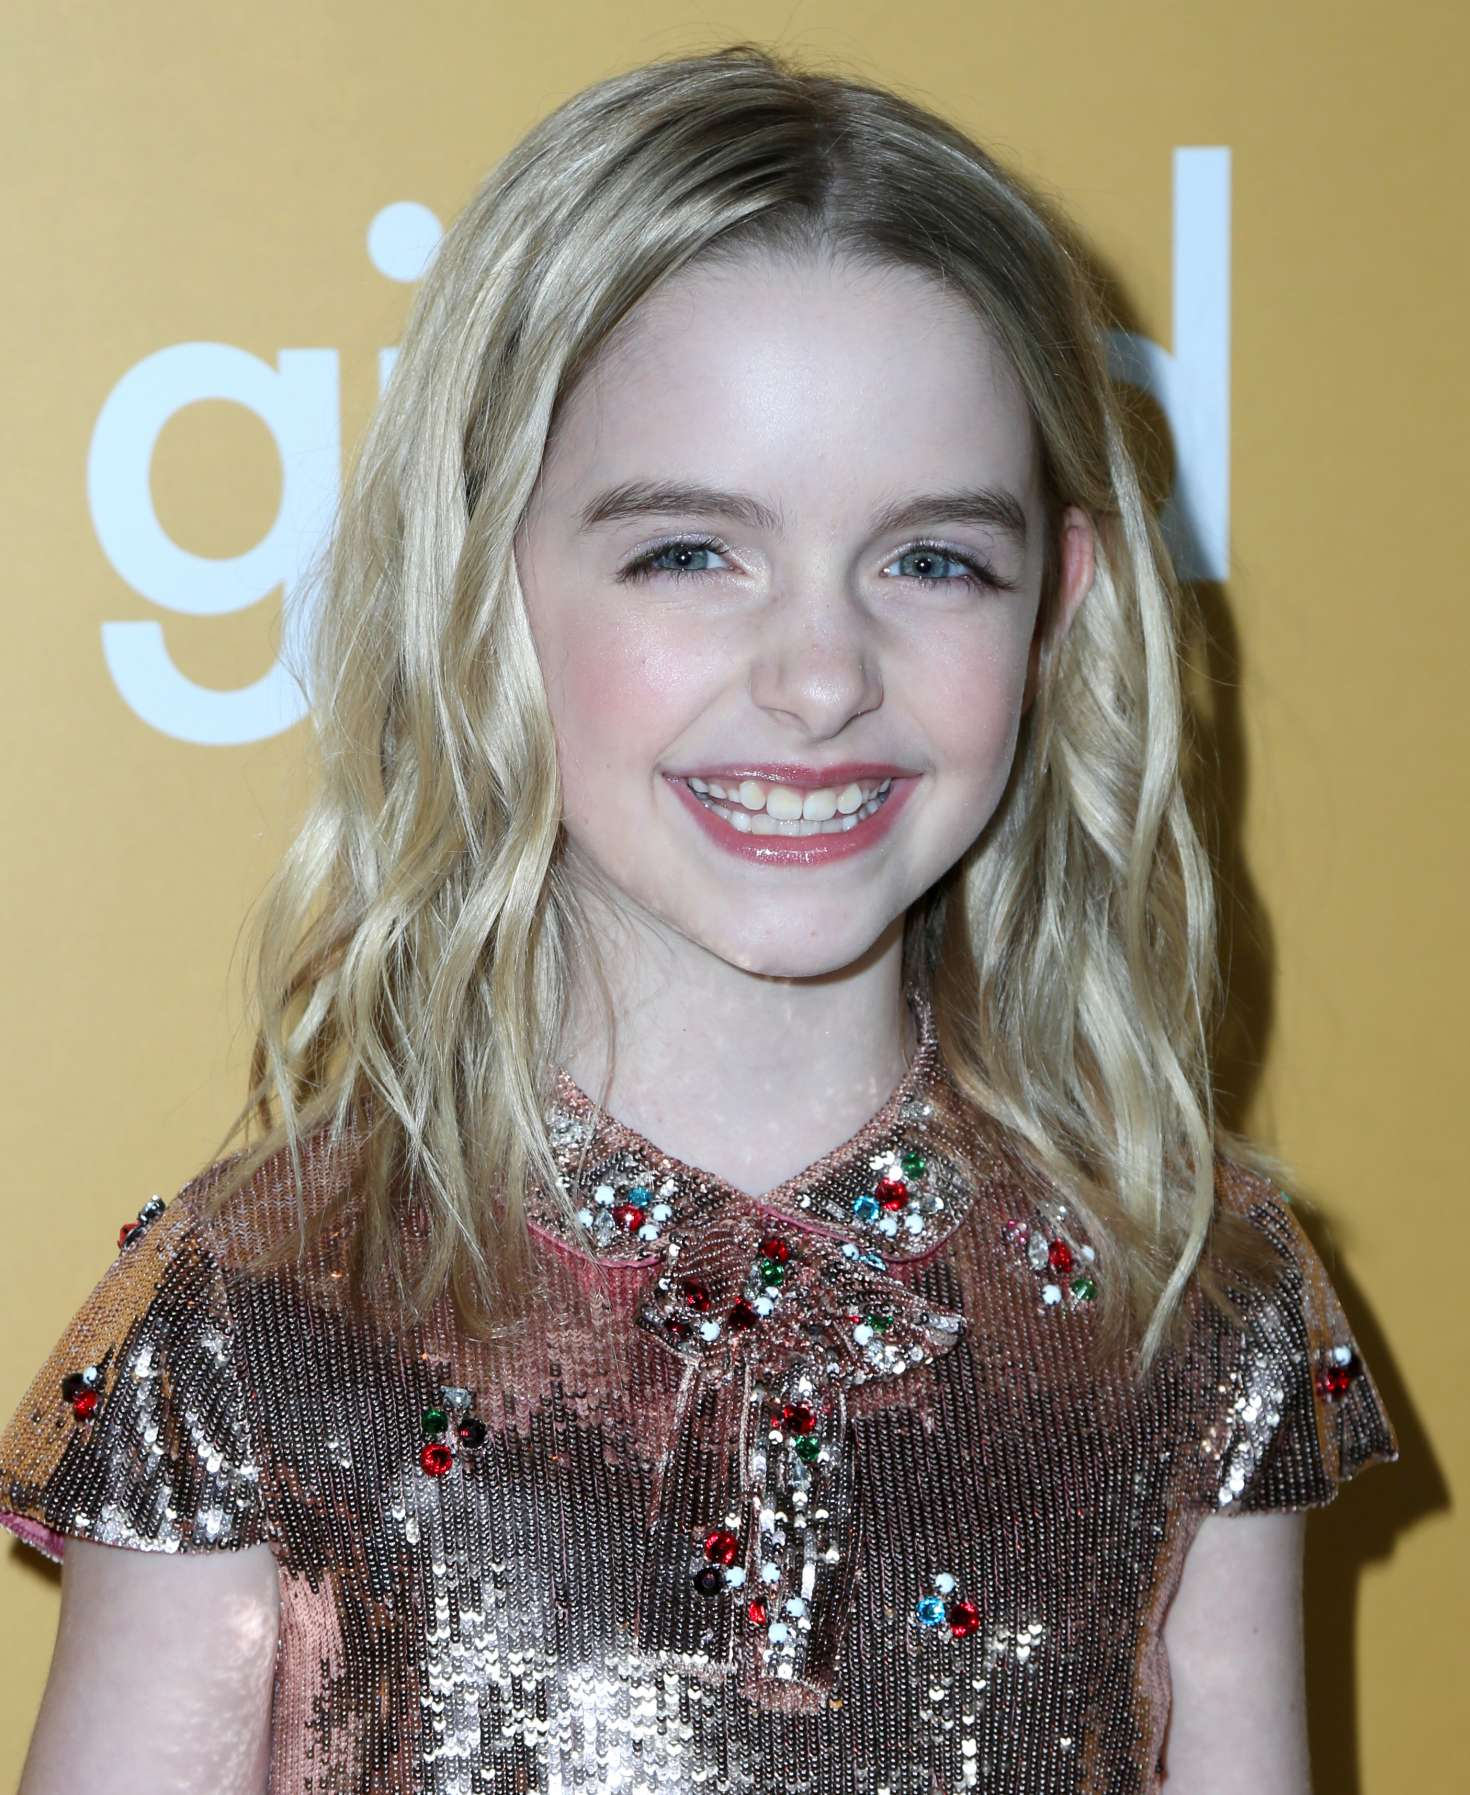 Mckenna Grace nude (67 foto and video), Topless, Cleavage, Feet, underwear 2020